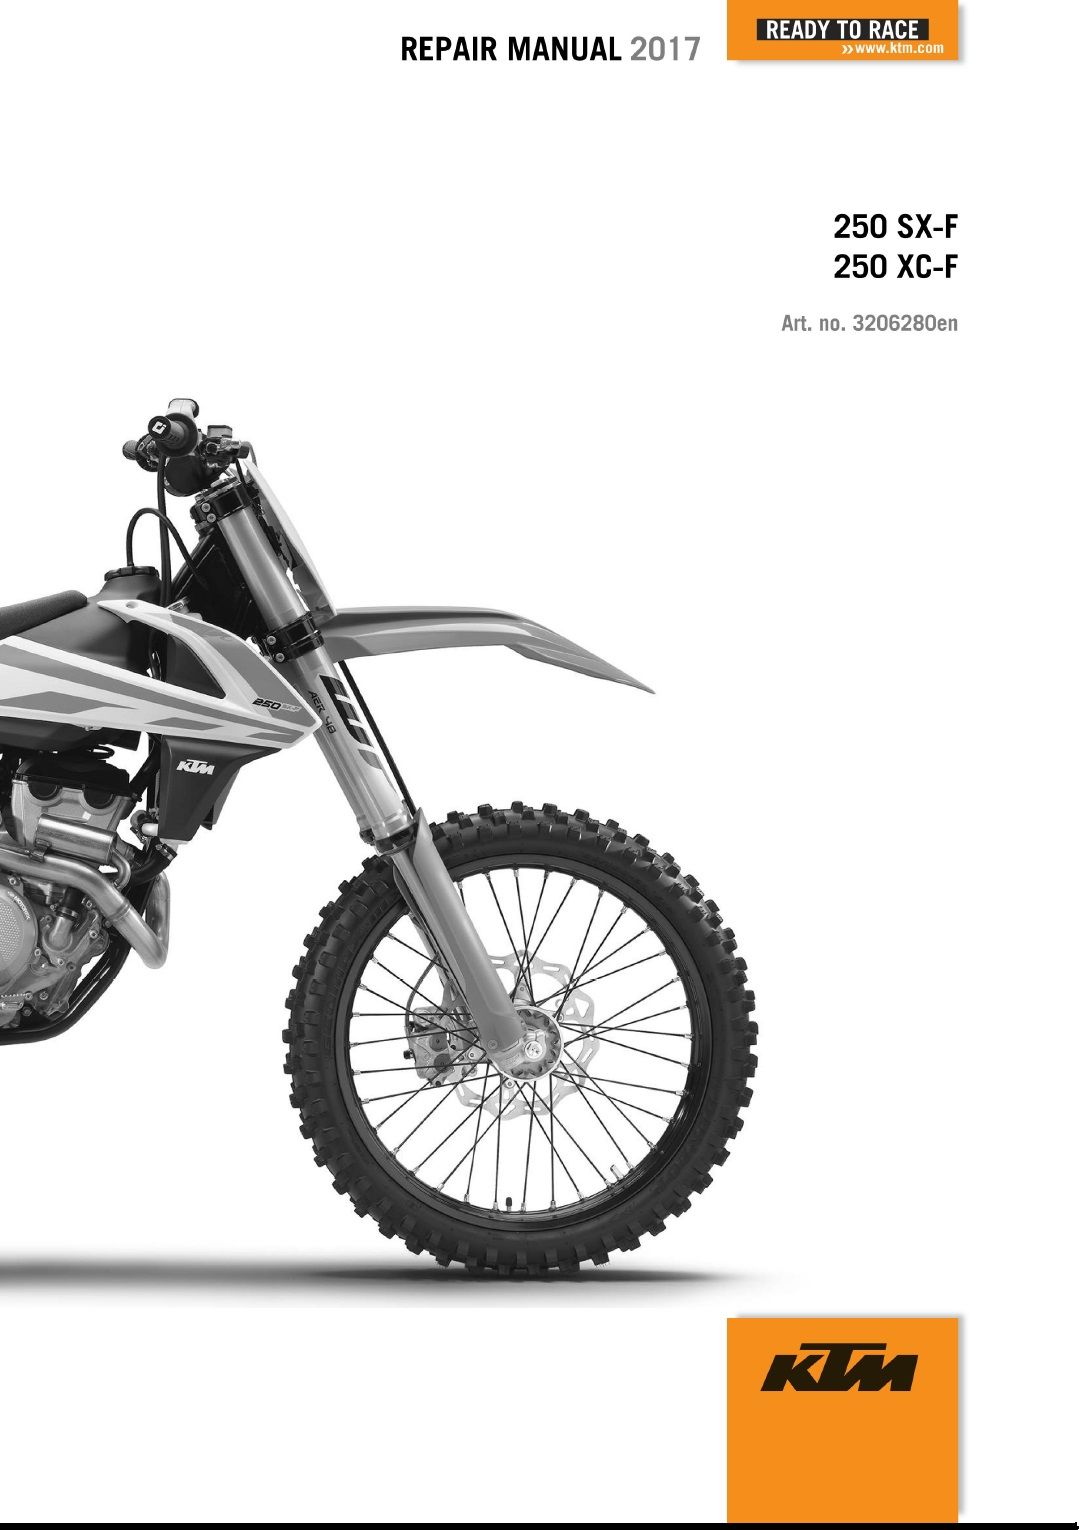 2017 KTM 250 SX-F XC-F Service Repair Manual 2017 KTM 250 SX